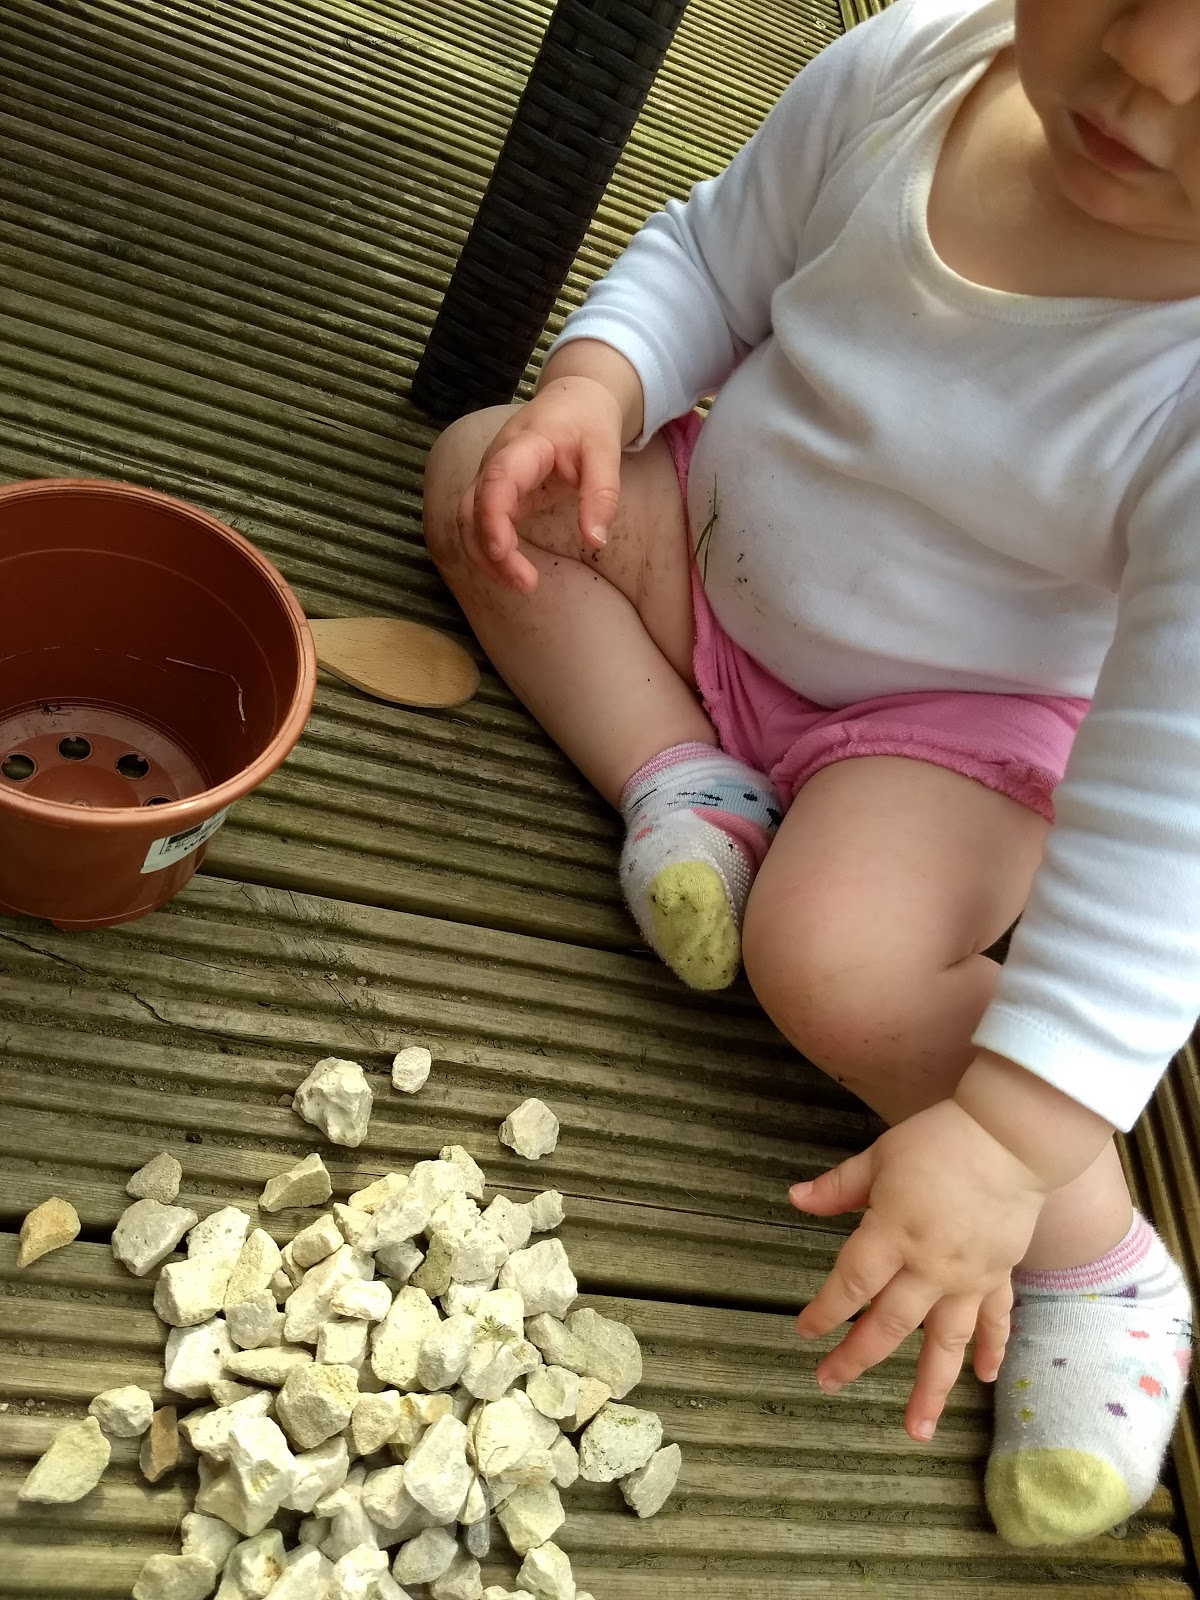 Toddler outdoor playing with pebbles.